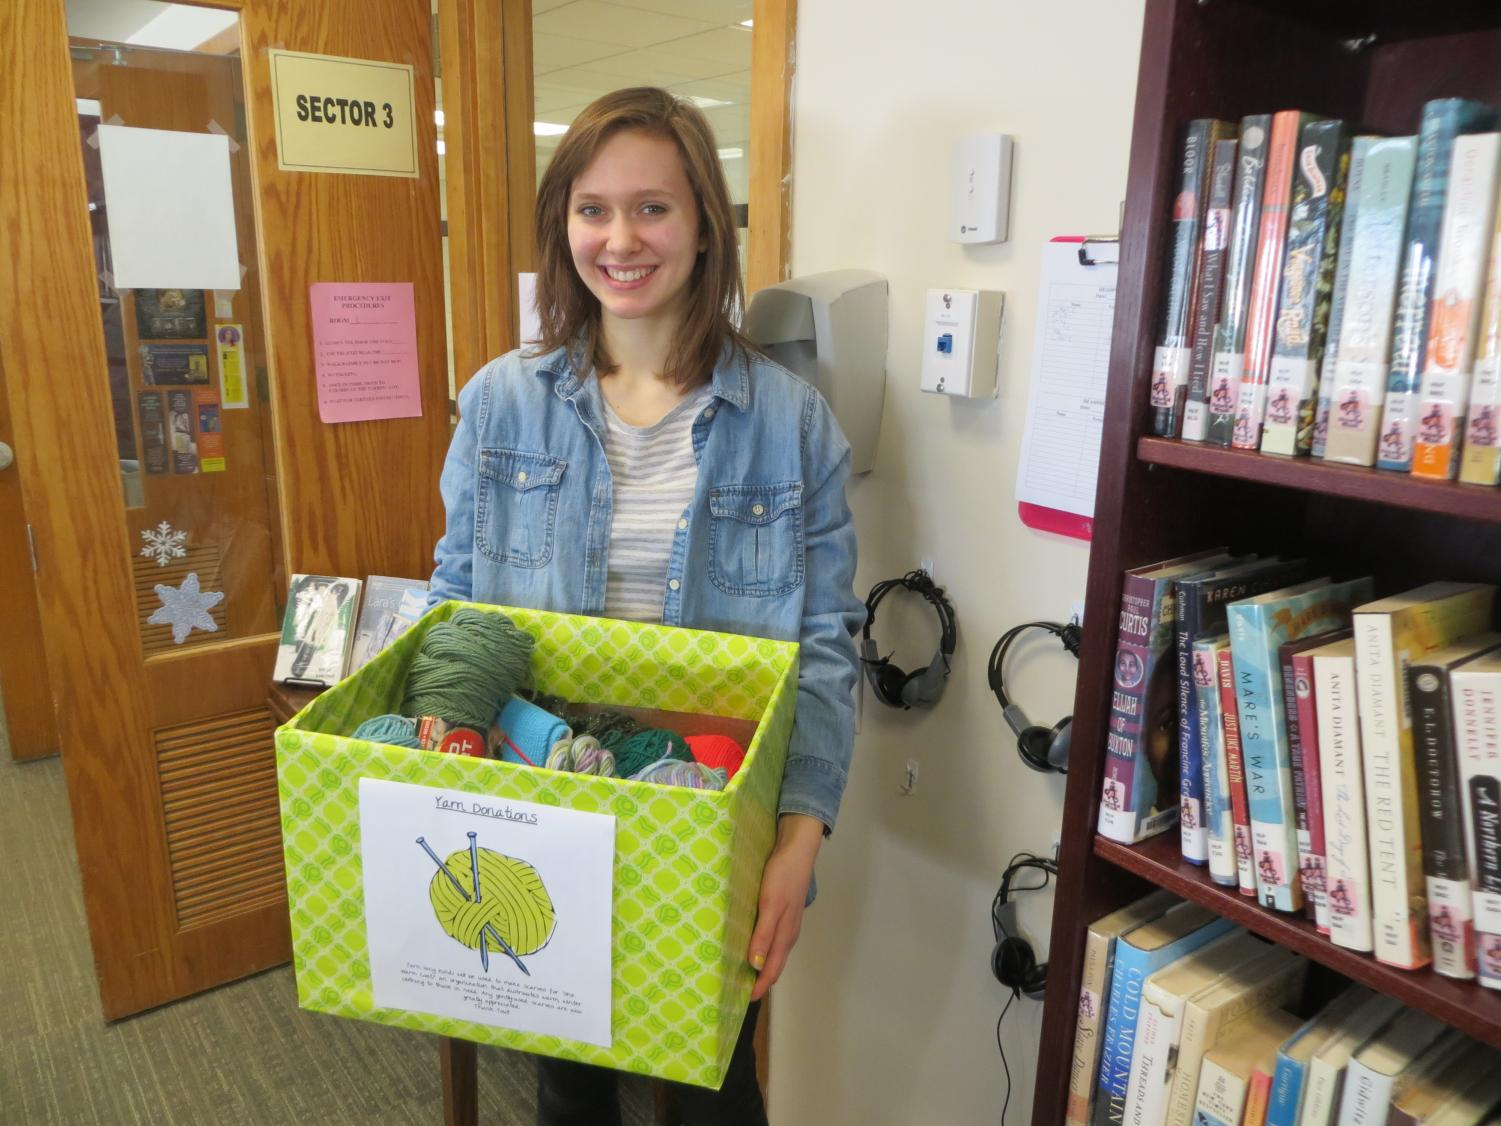 Amanda Brown has a box in the library for yarn donations. Read the story to find out what she will do with the yarn.